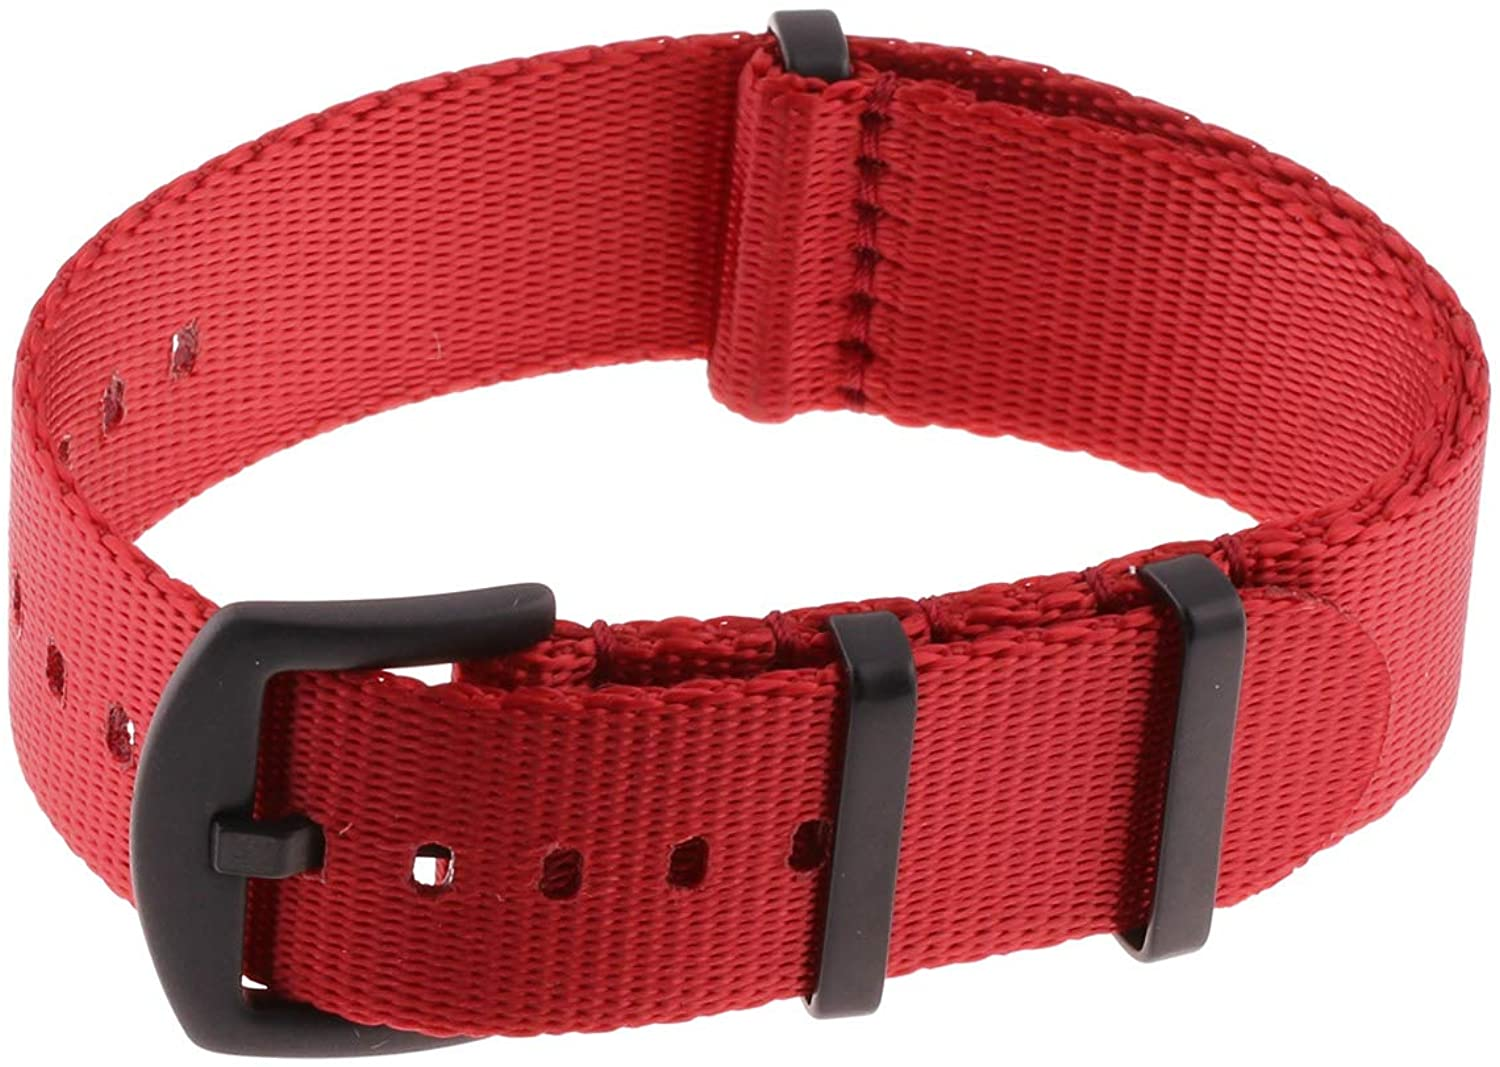 StrapsCo Premium Nylon Seat Belt Wrap Around Watch Band Strap 18mm 20mm 22mm 24mm